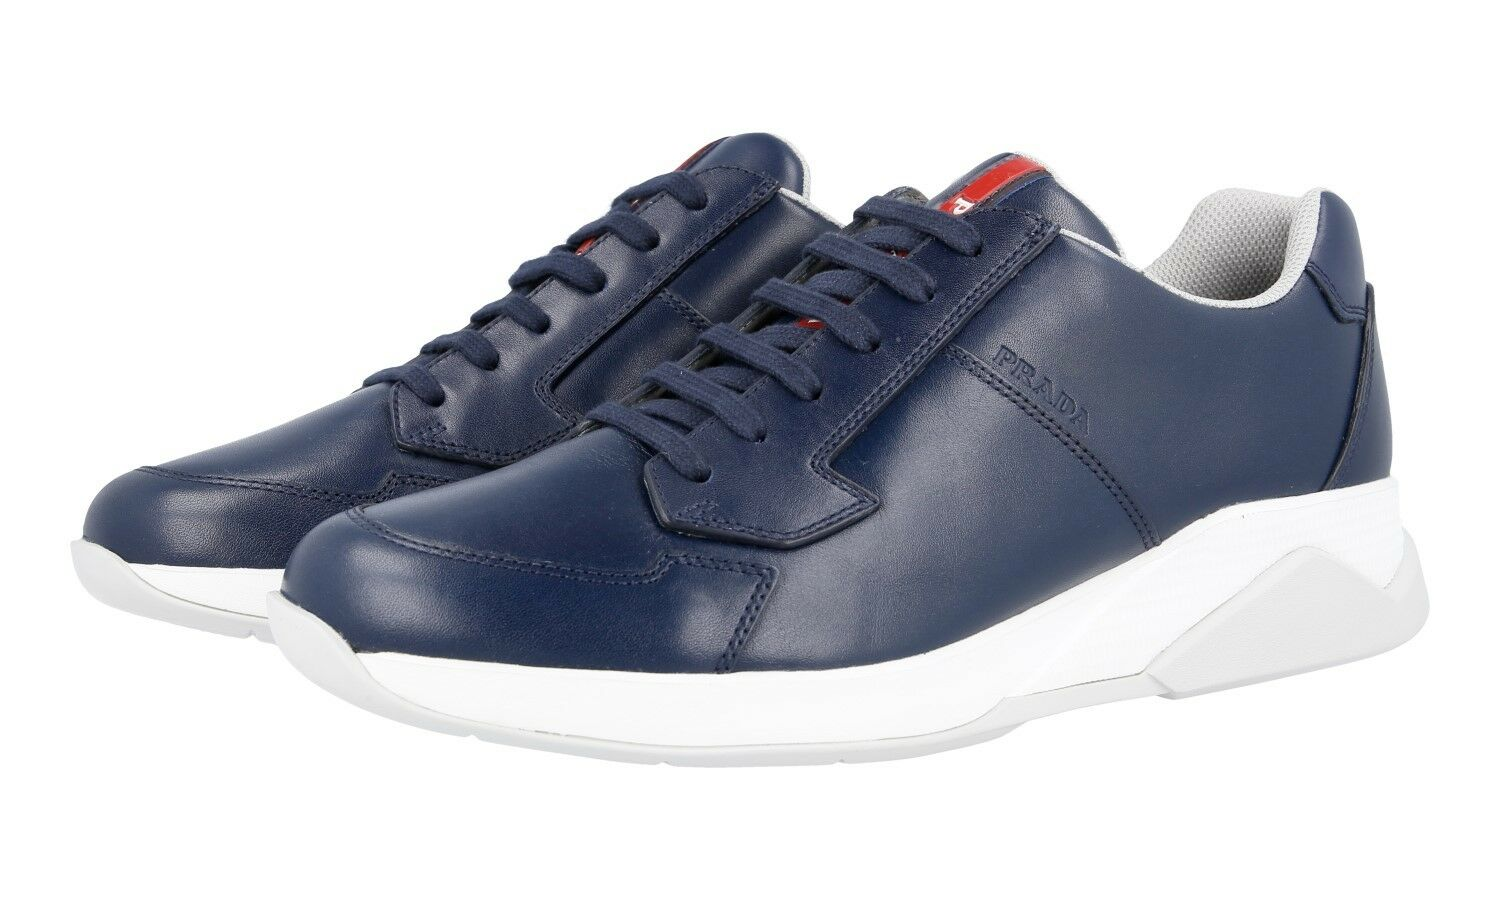 AUTHENTIC LUXURY PRADA SNEAKERS SHOES 4E2807 blueE NEW 6 40 40,5